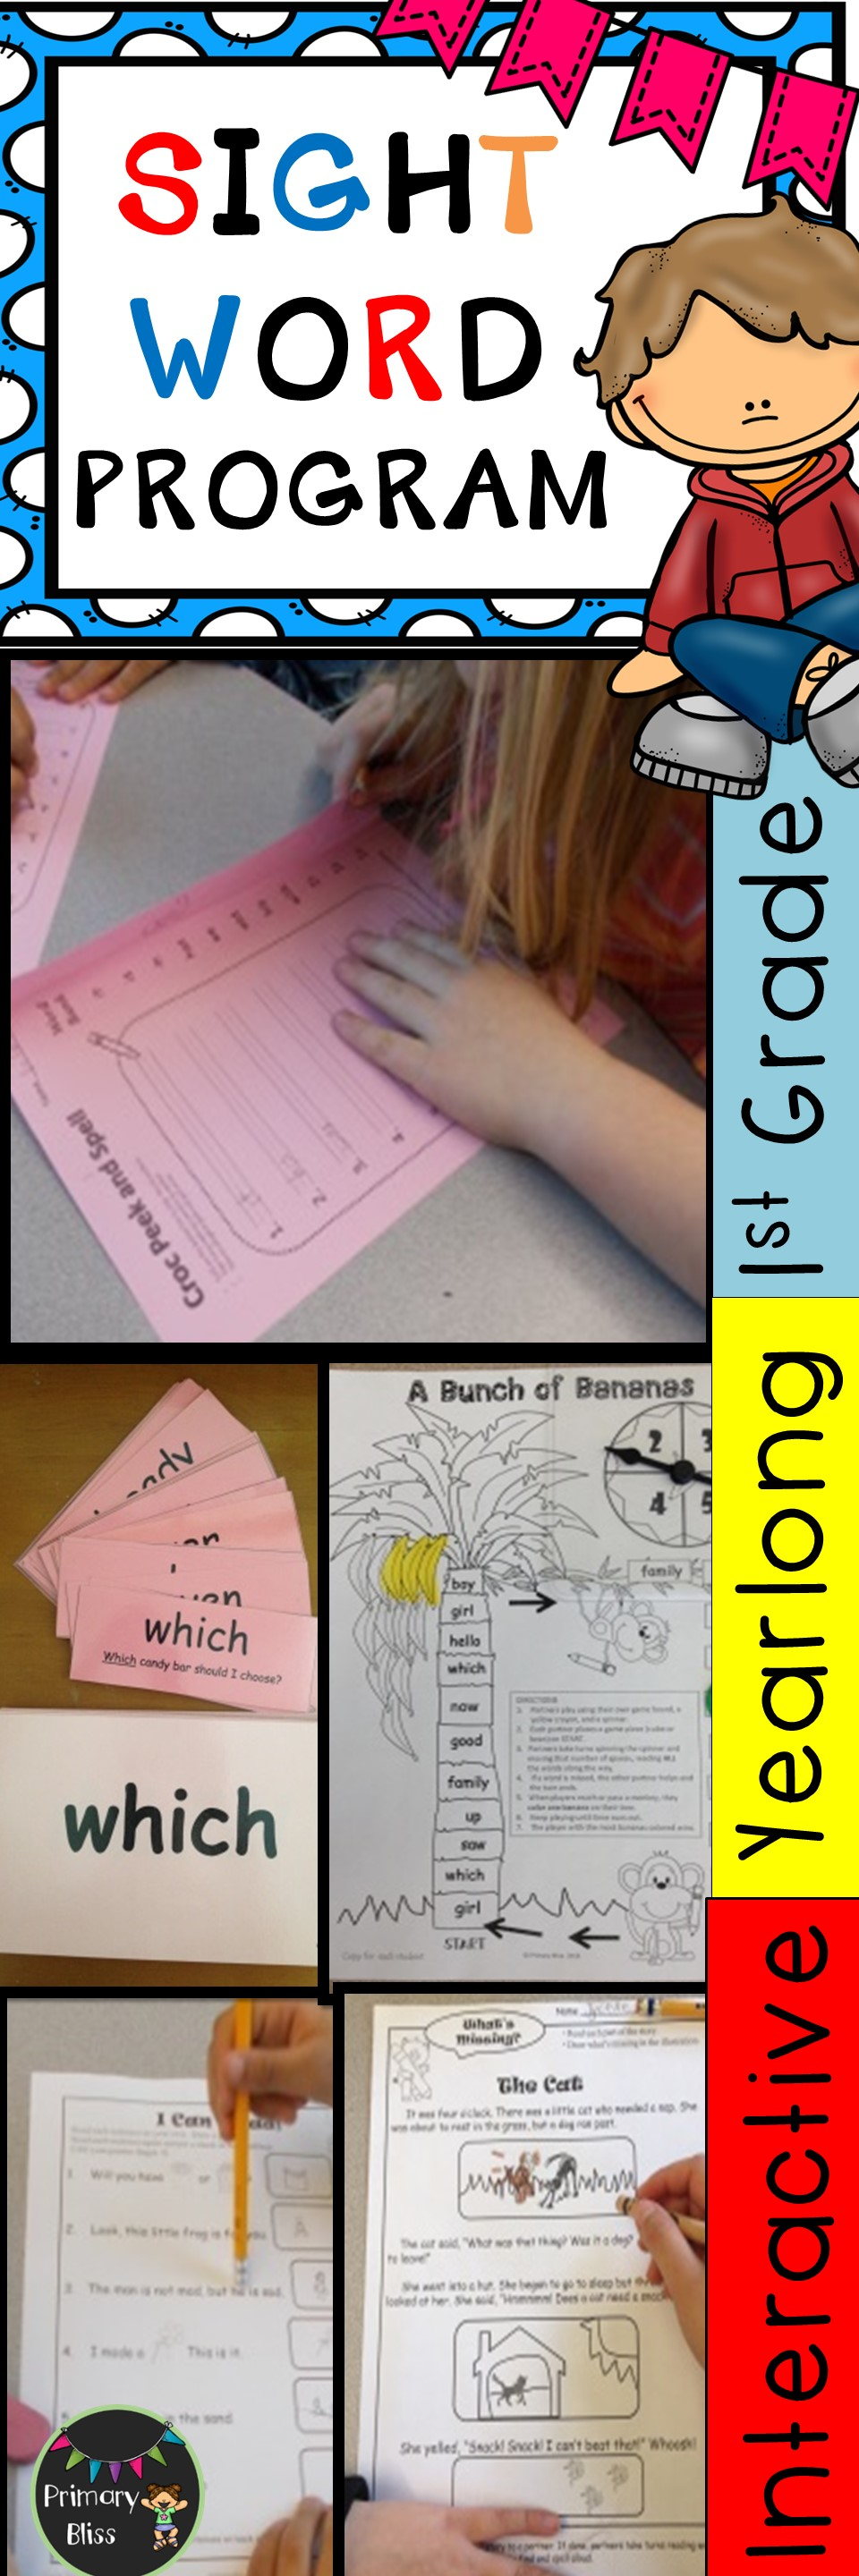 Worksheet Sight Word Program 1000 images about sight words on pinterest